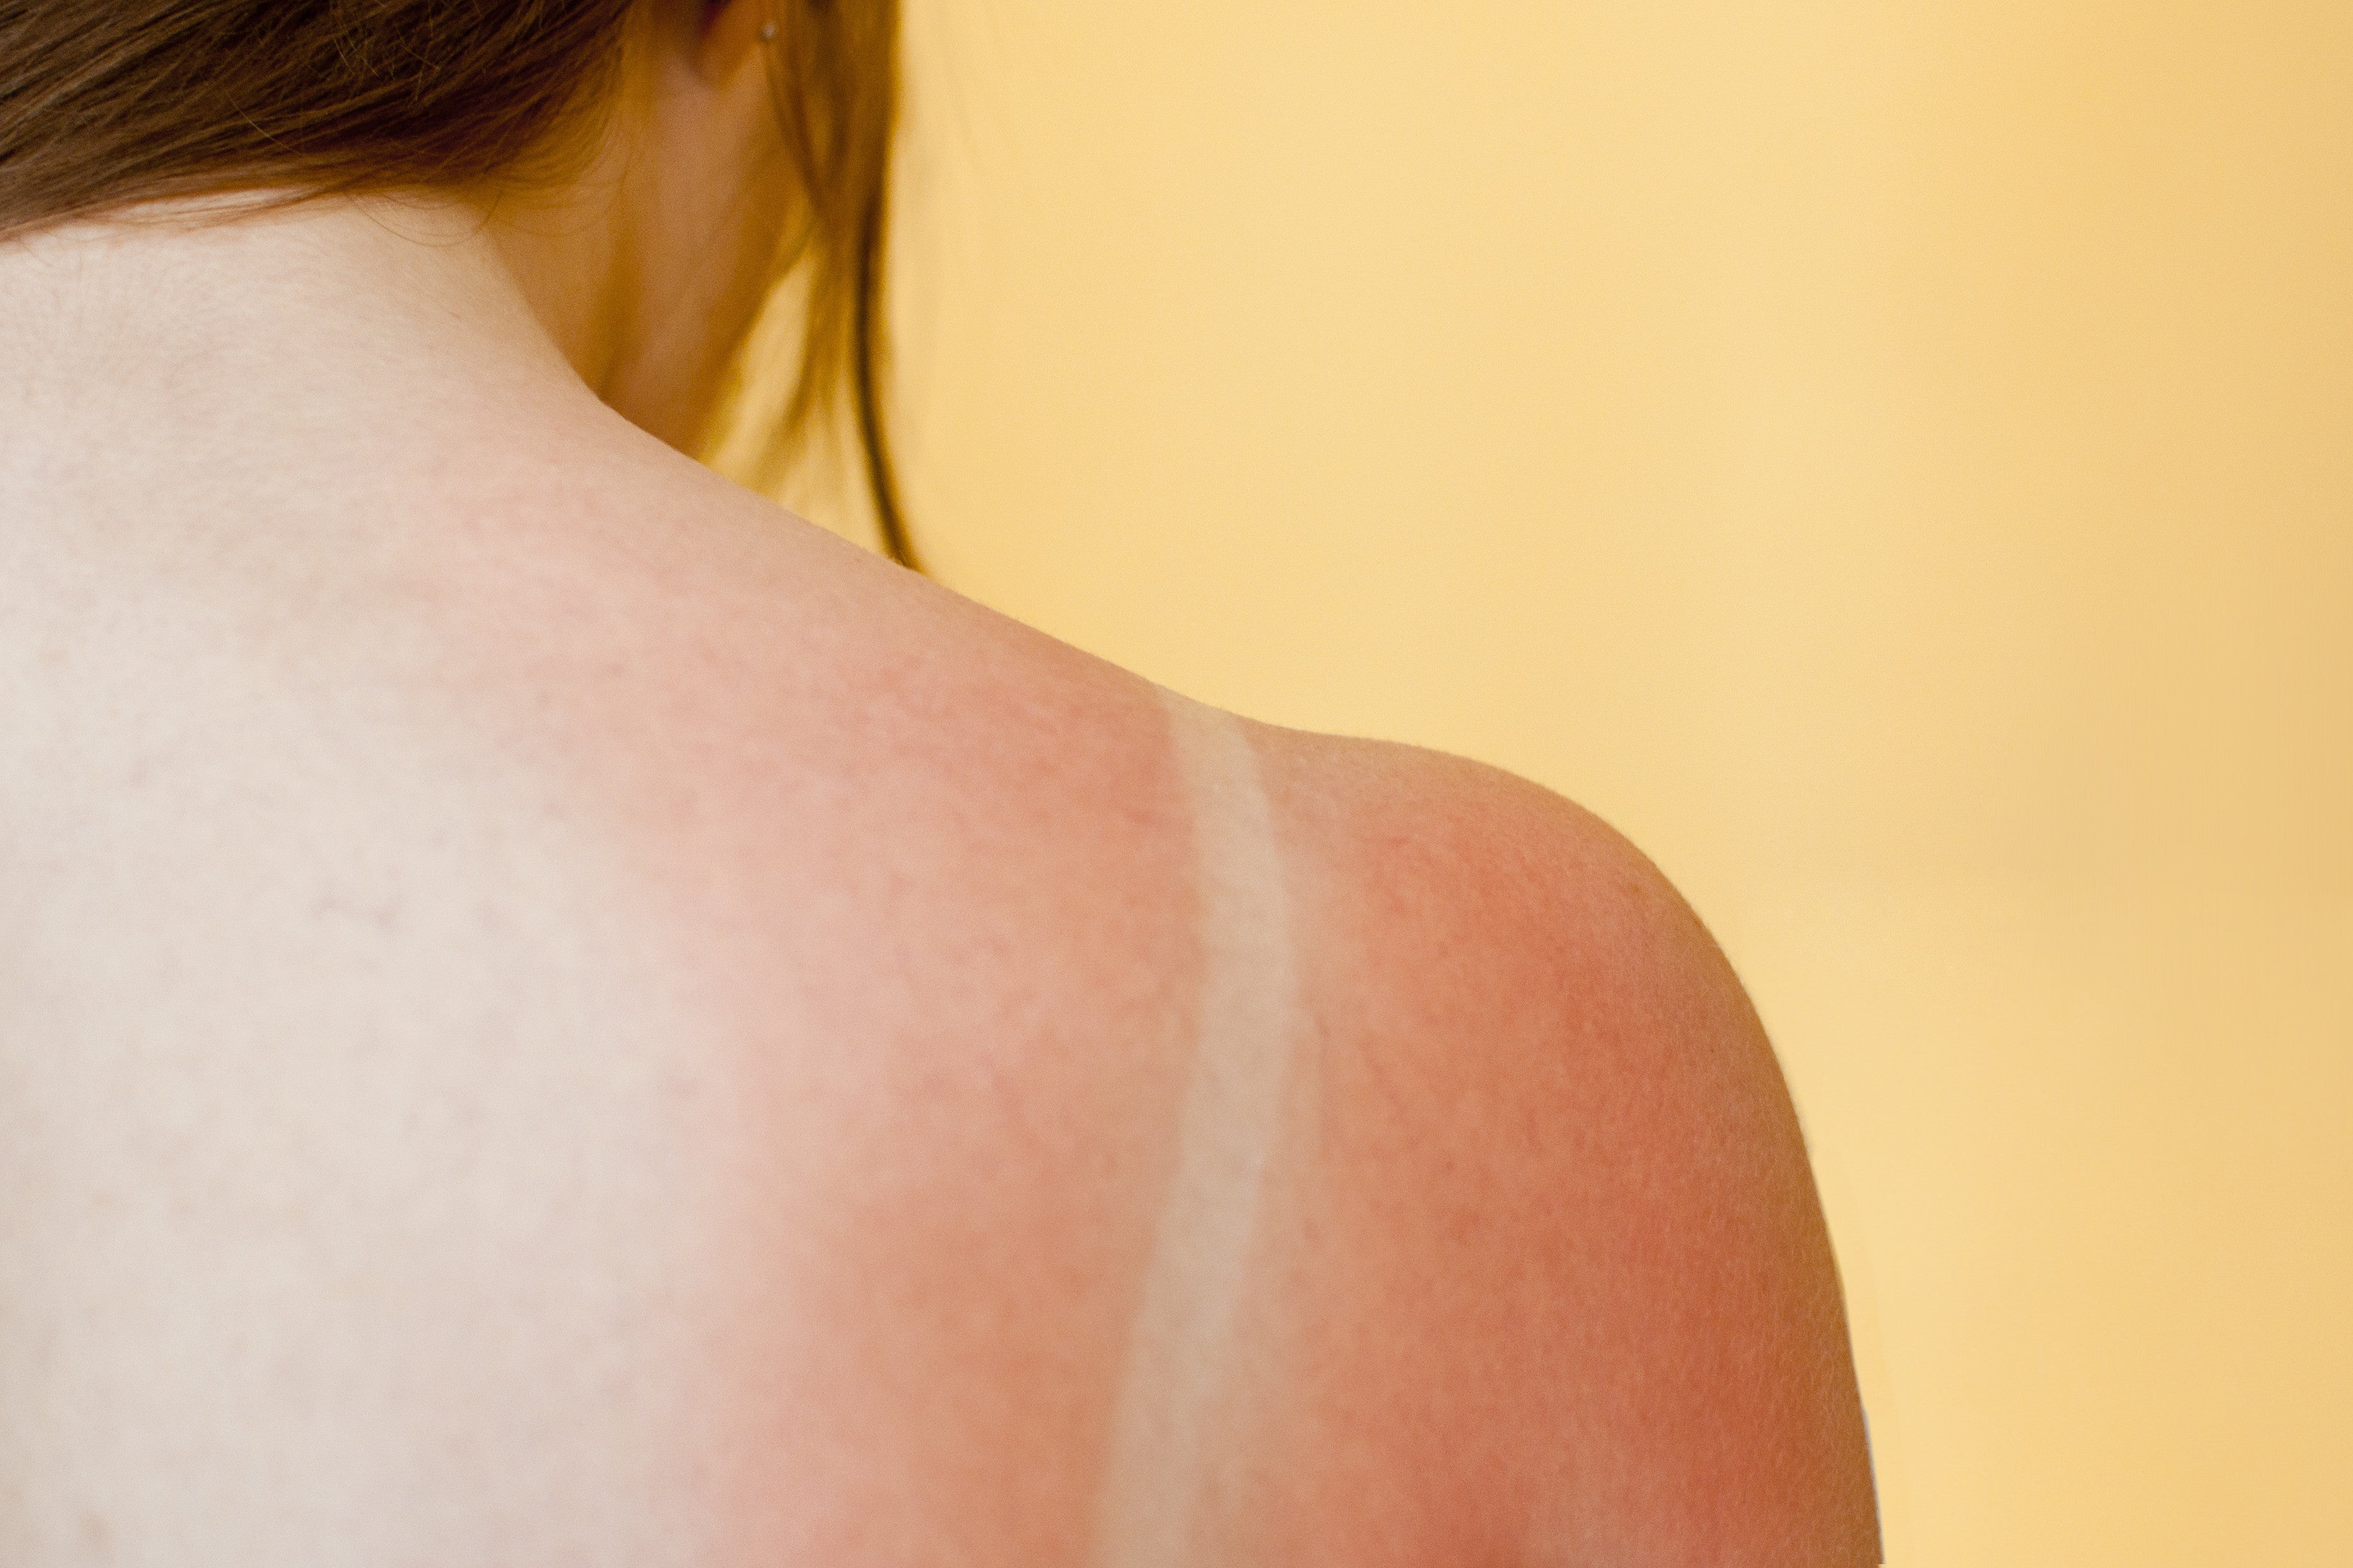 Brush On Block image of sun burn lined bathing suit on shoulders